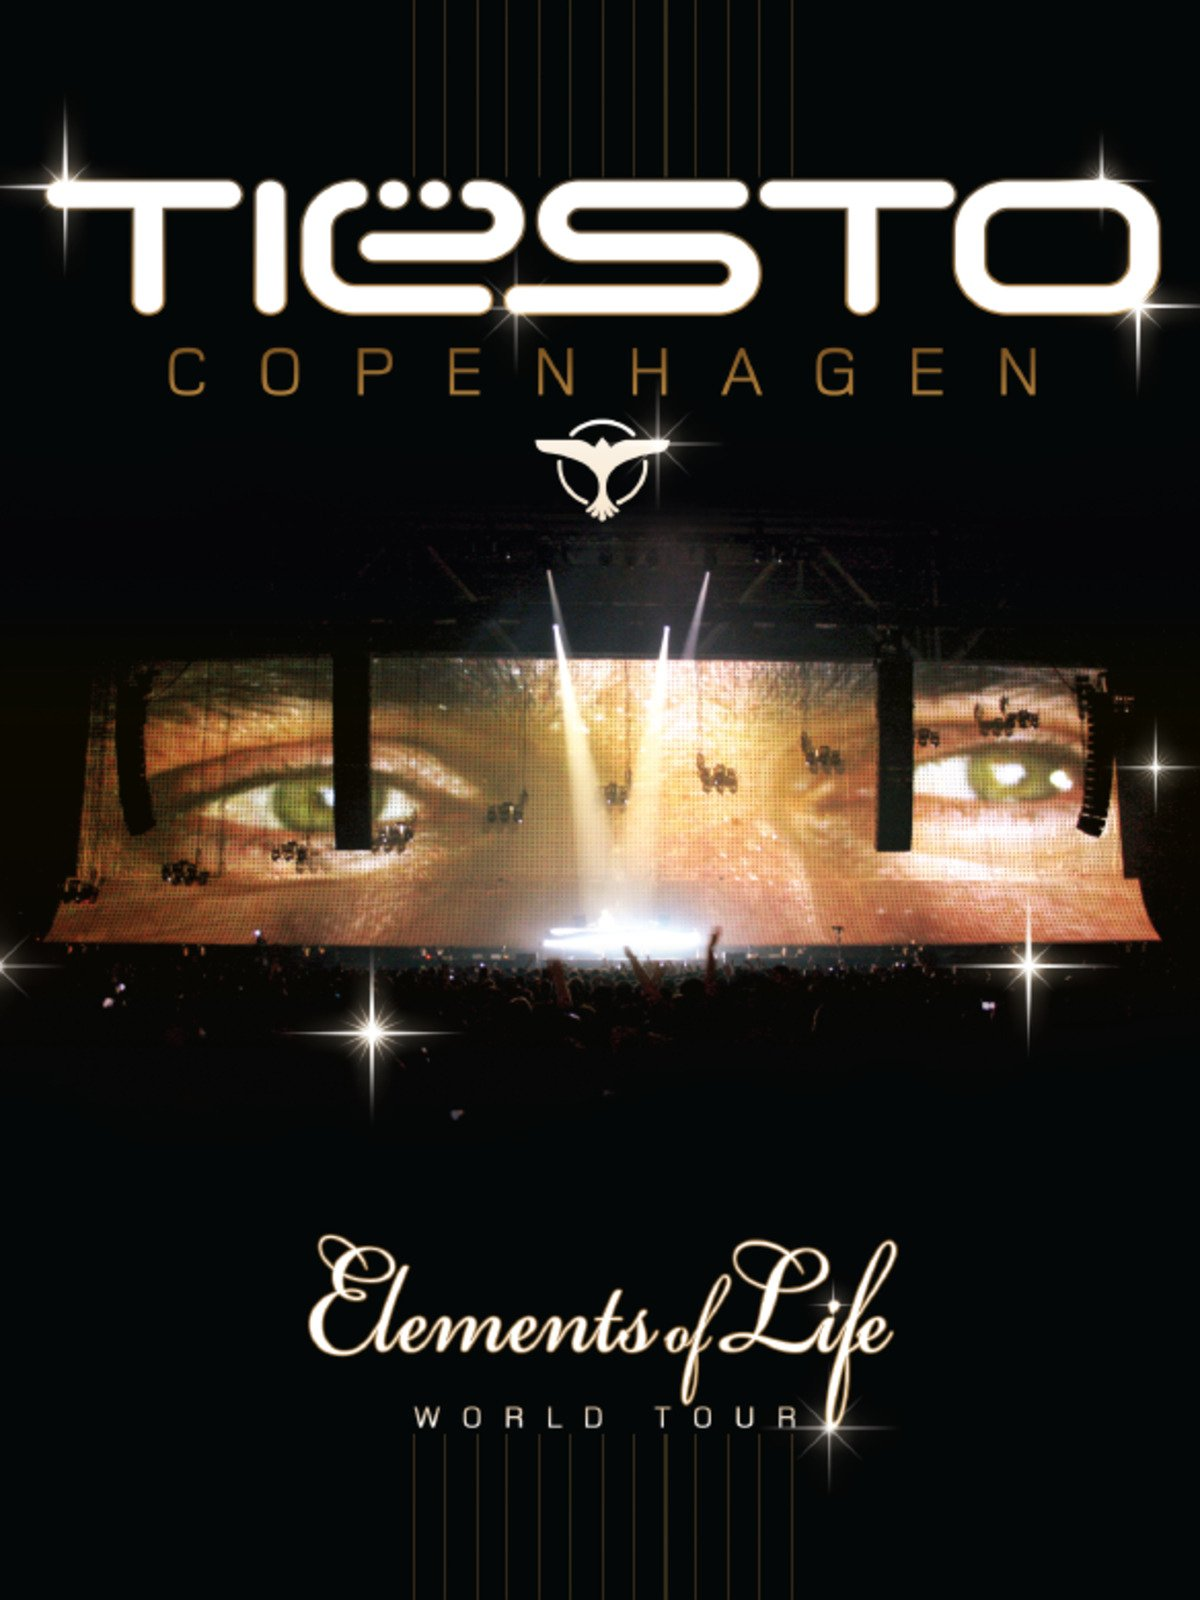 Tiesto Copenhagen (Elements of Life World Tour) on Amazon Prime Instant Video UK